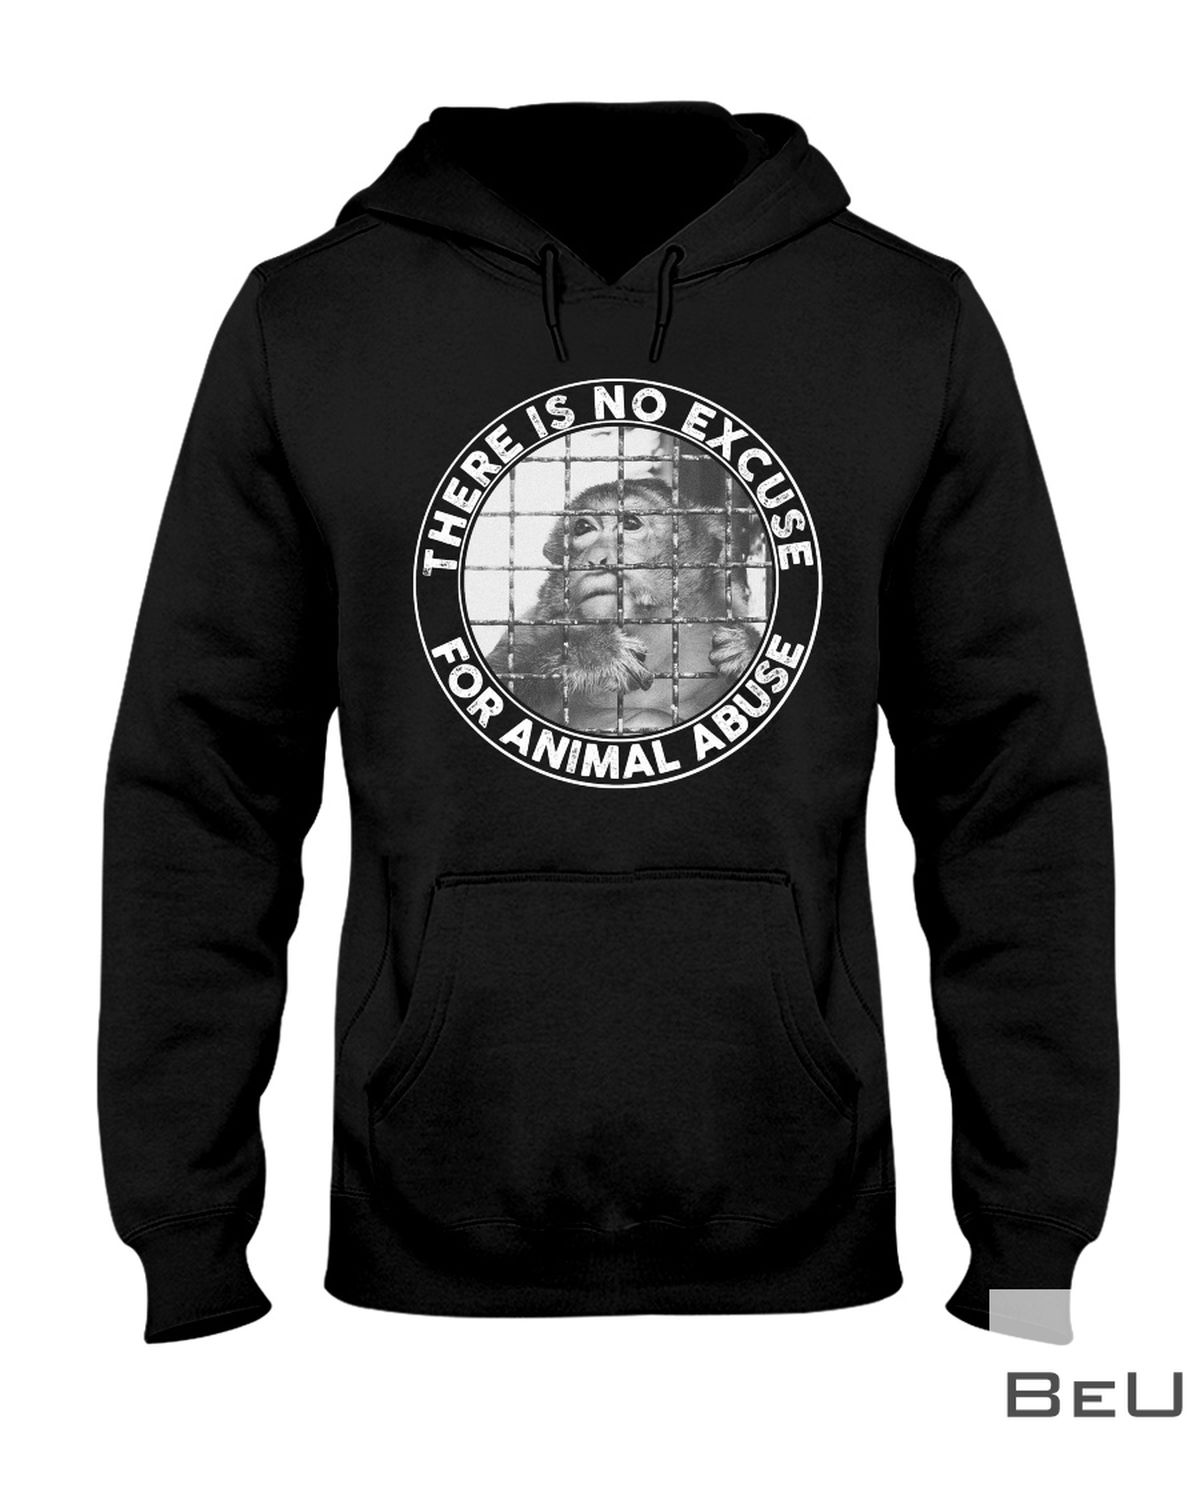 The Is No Excuse For Animal Abuse Shirtx